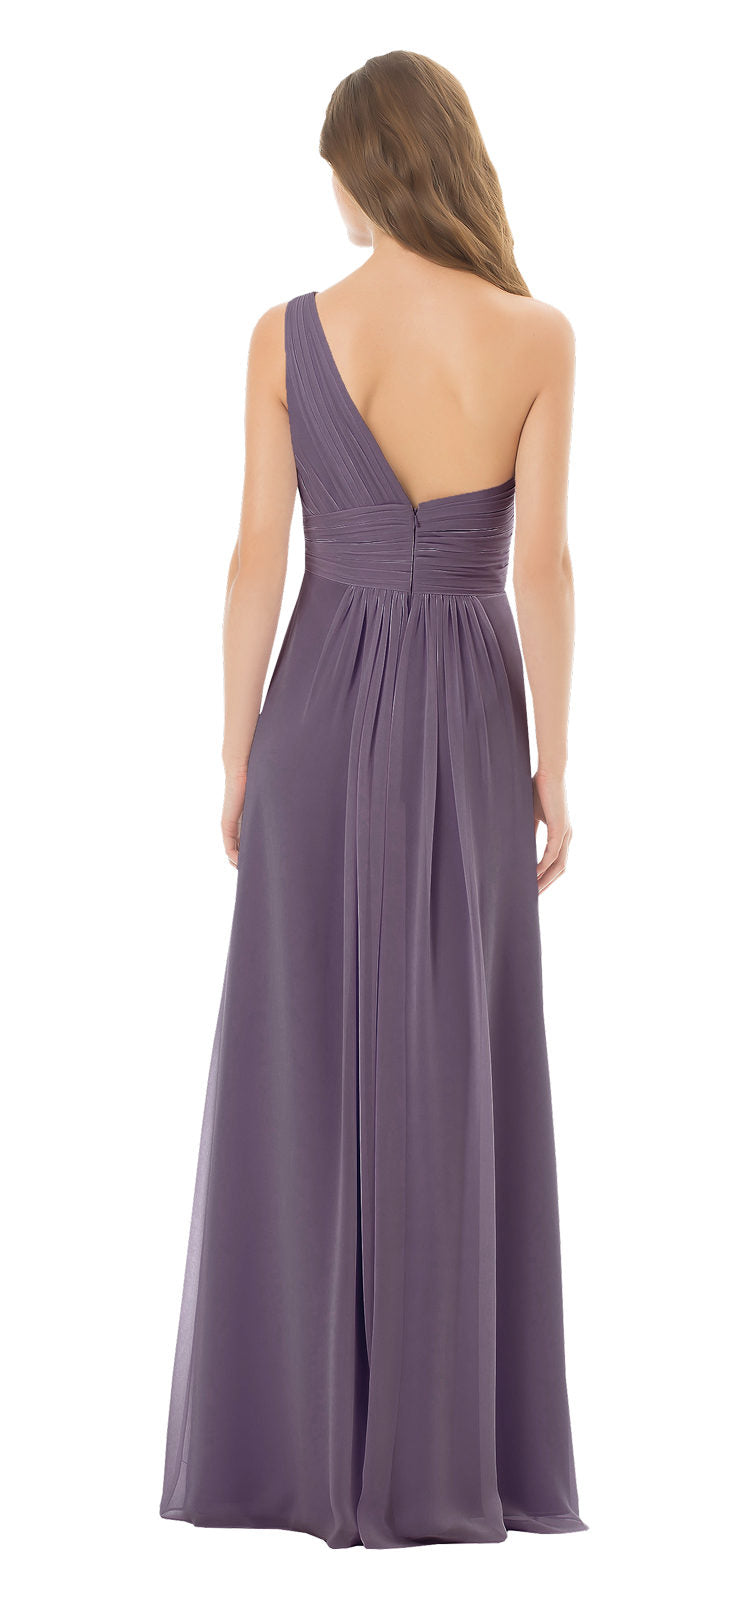 Bill Levkoff Bridesmaid Dress Style 492 back